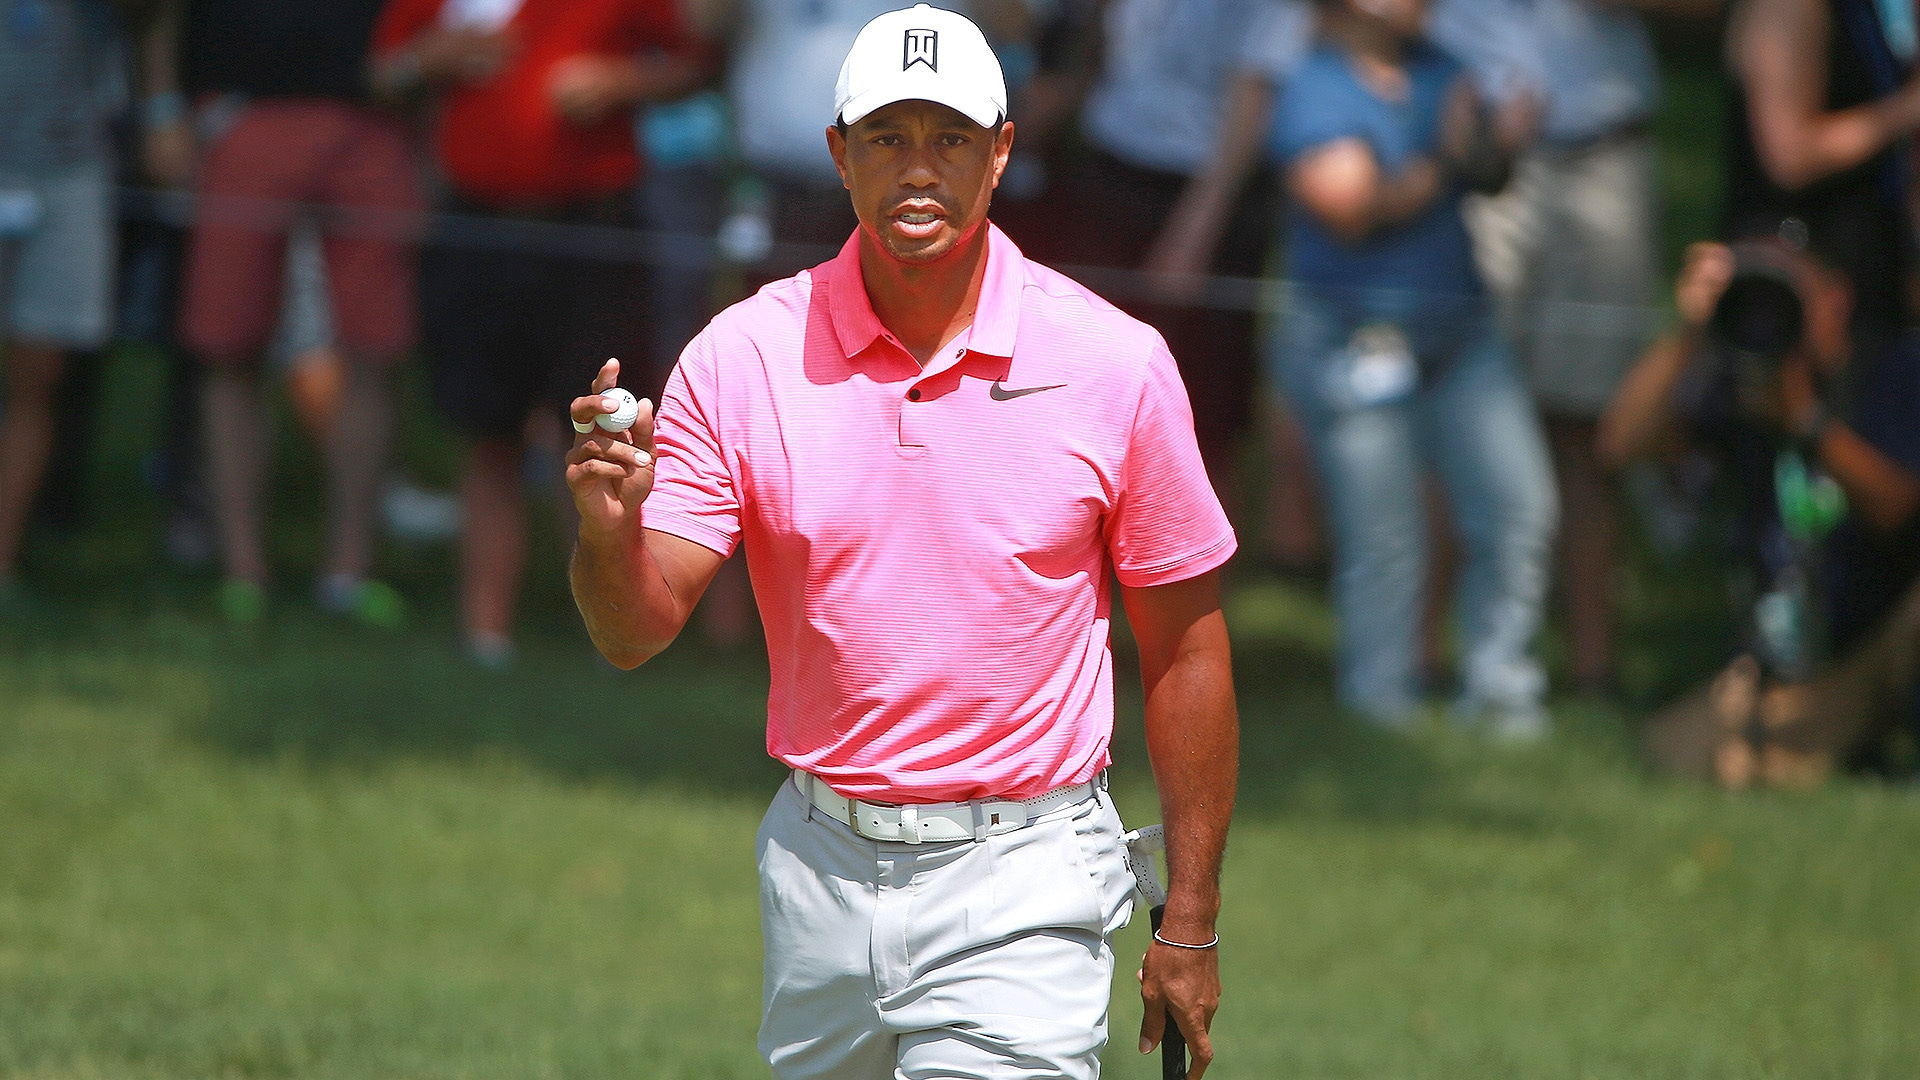 d0cdf8470 Watch  Tiger Woods stays hot in Round 3 at Memorial